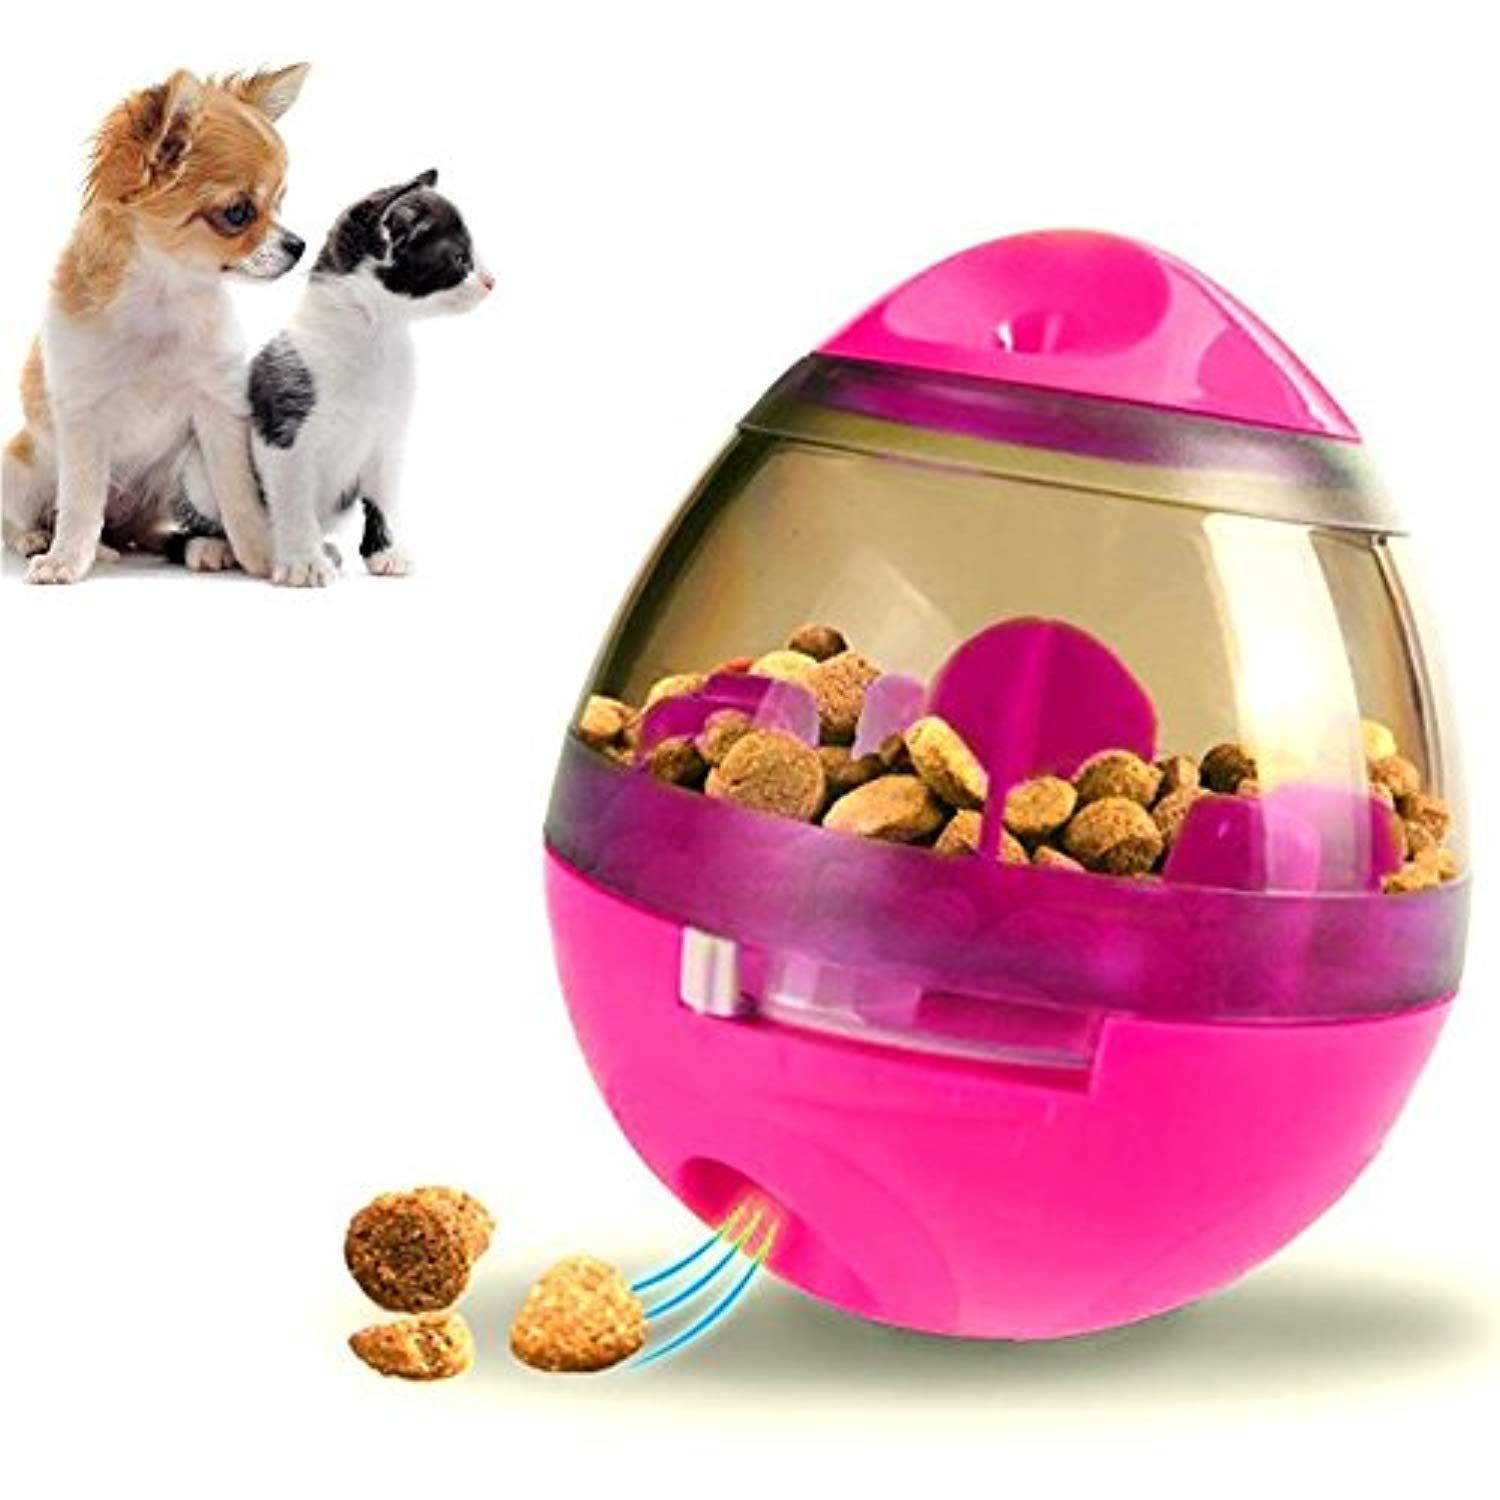 Faougess Dog Food Dispenser Ball Toy Pet Increase Iq Slow Feeder